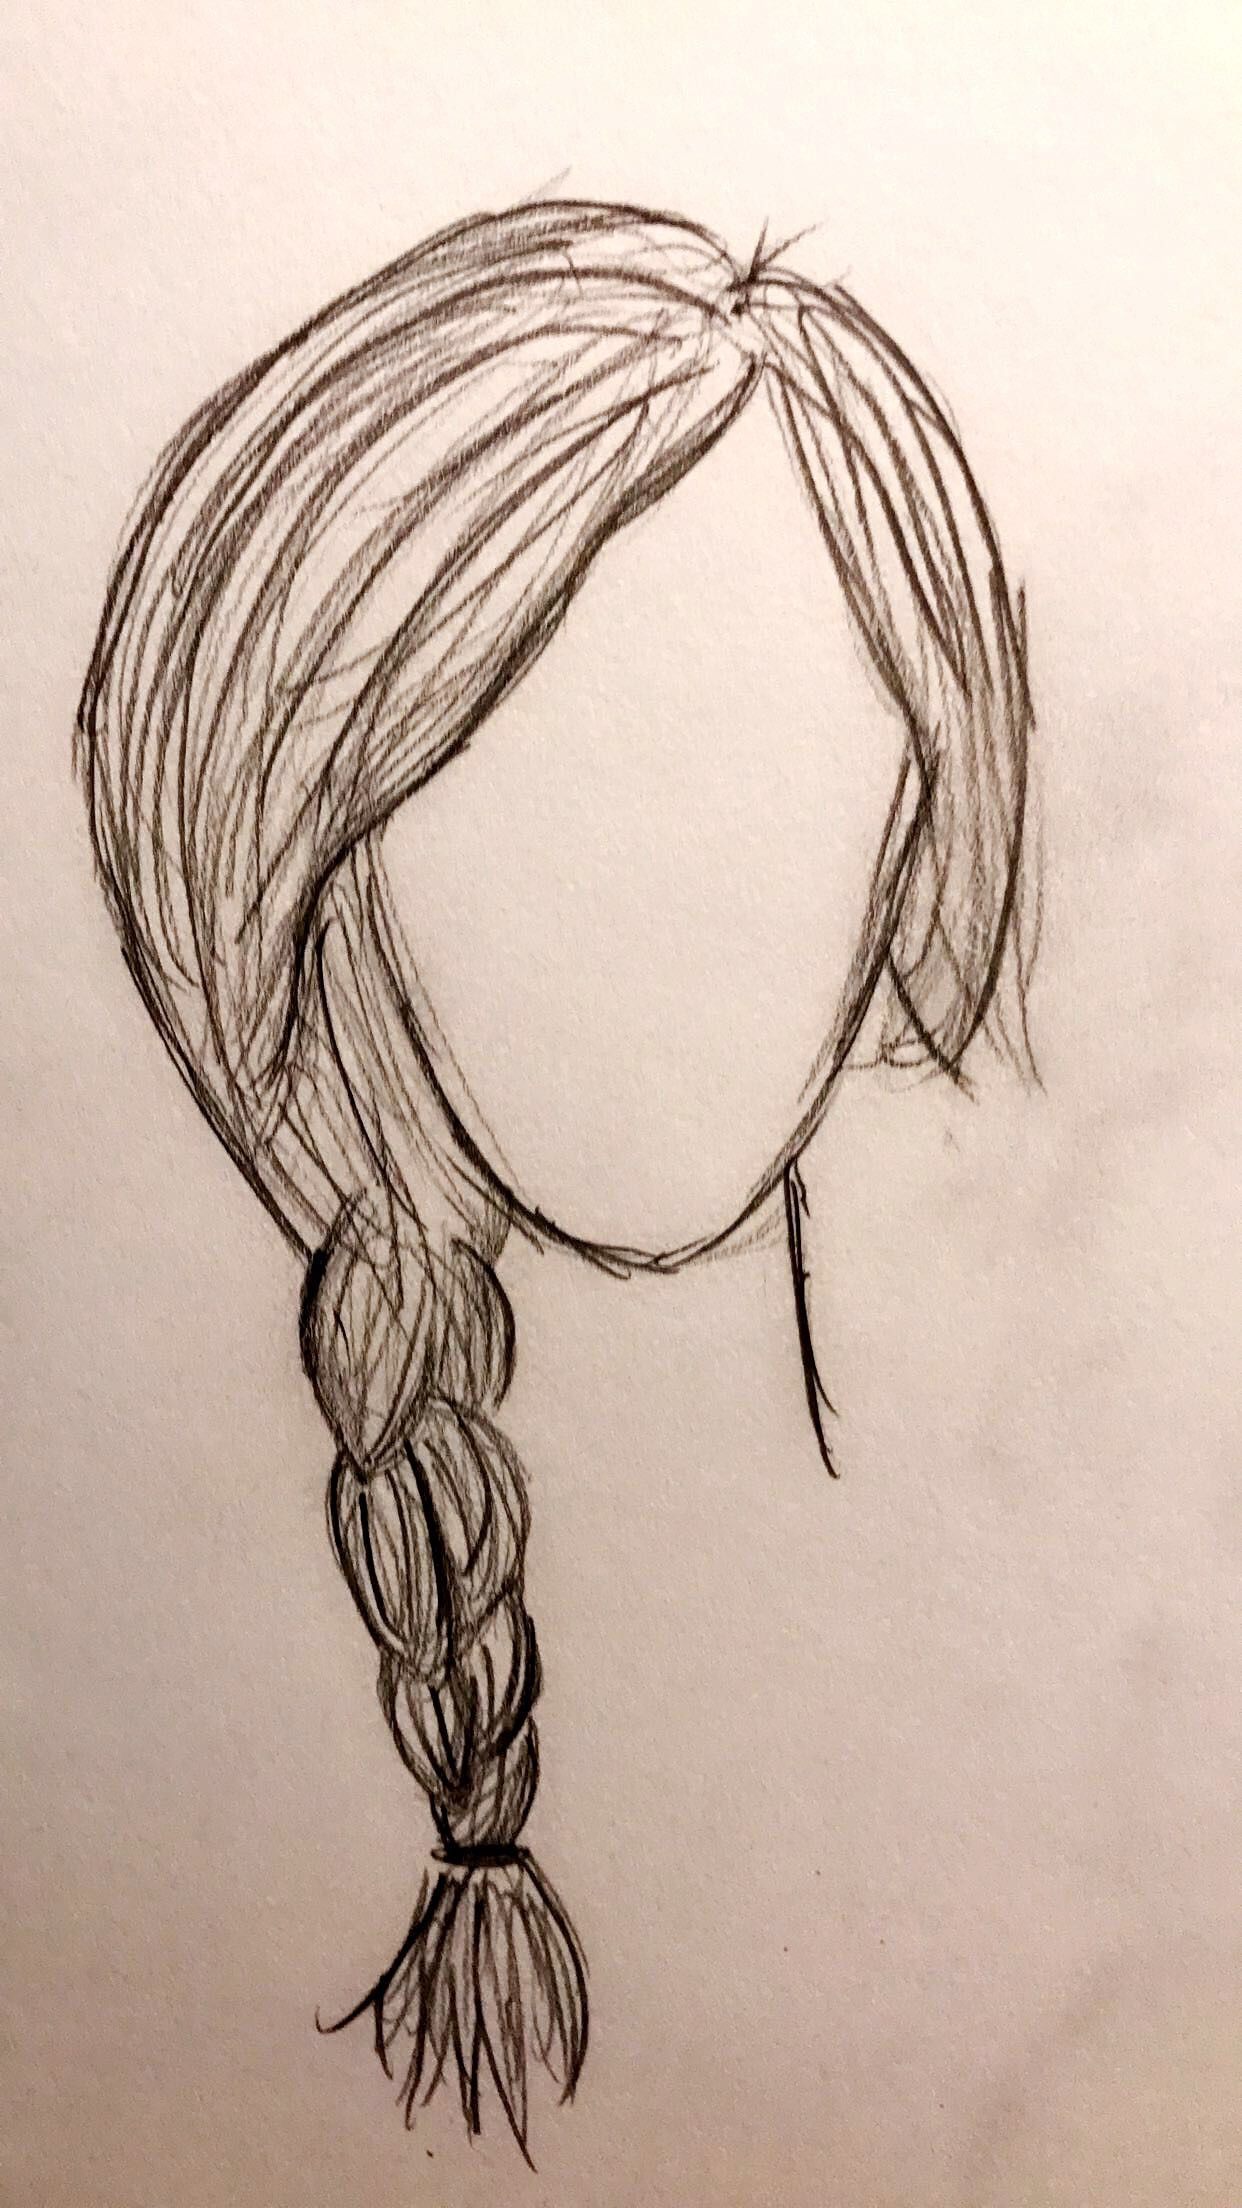 2 minute drawing #braids #drawings #easy | How to draw ...